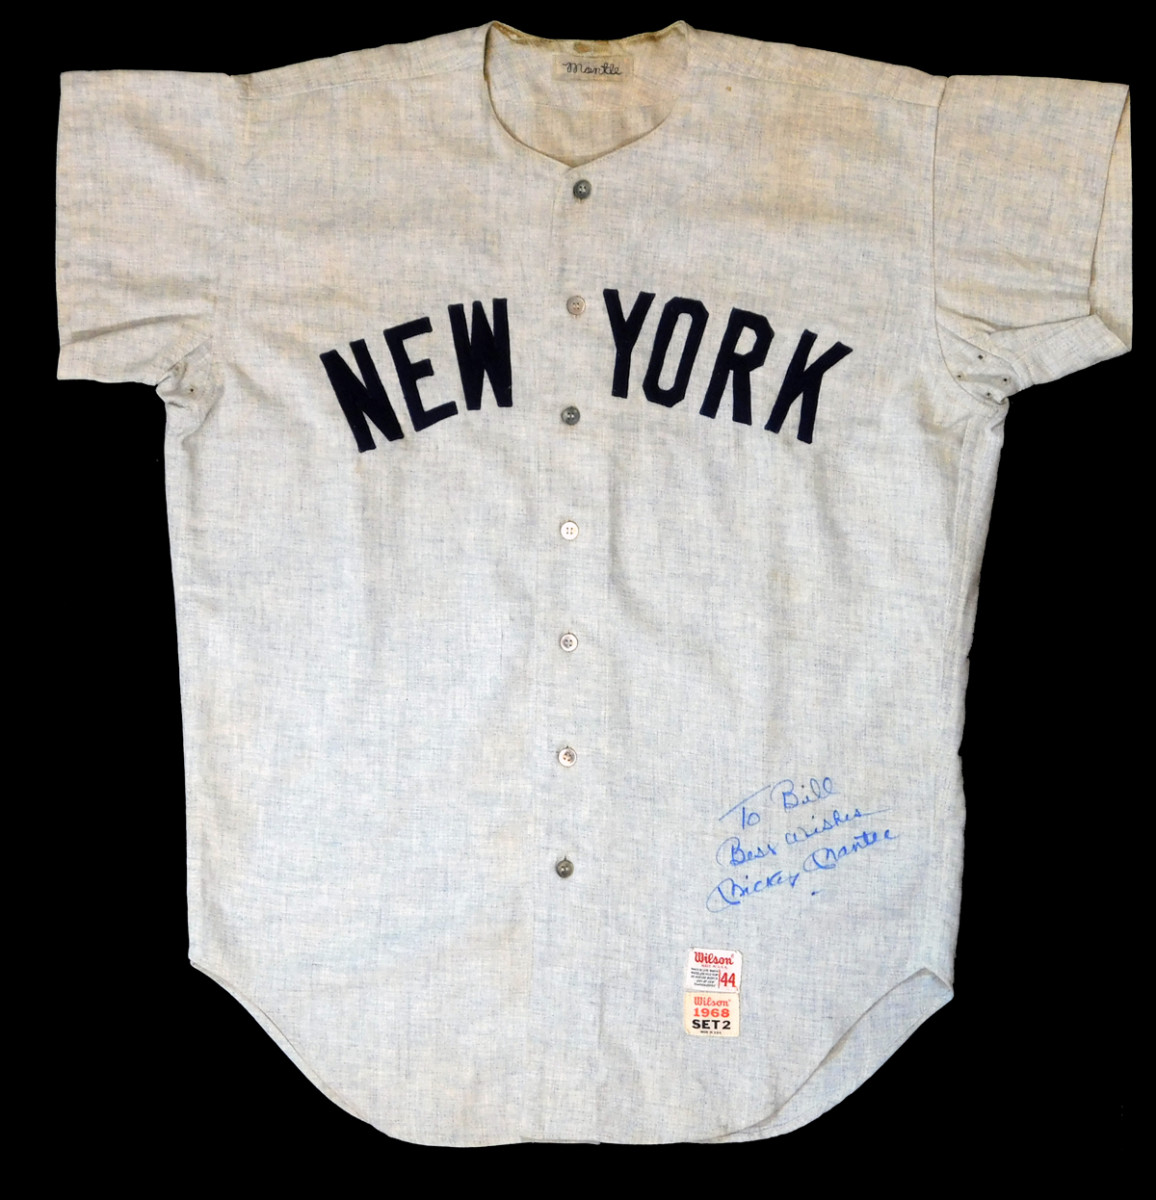 mantle jersey